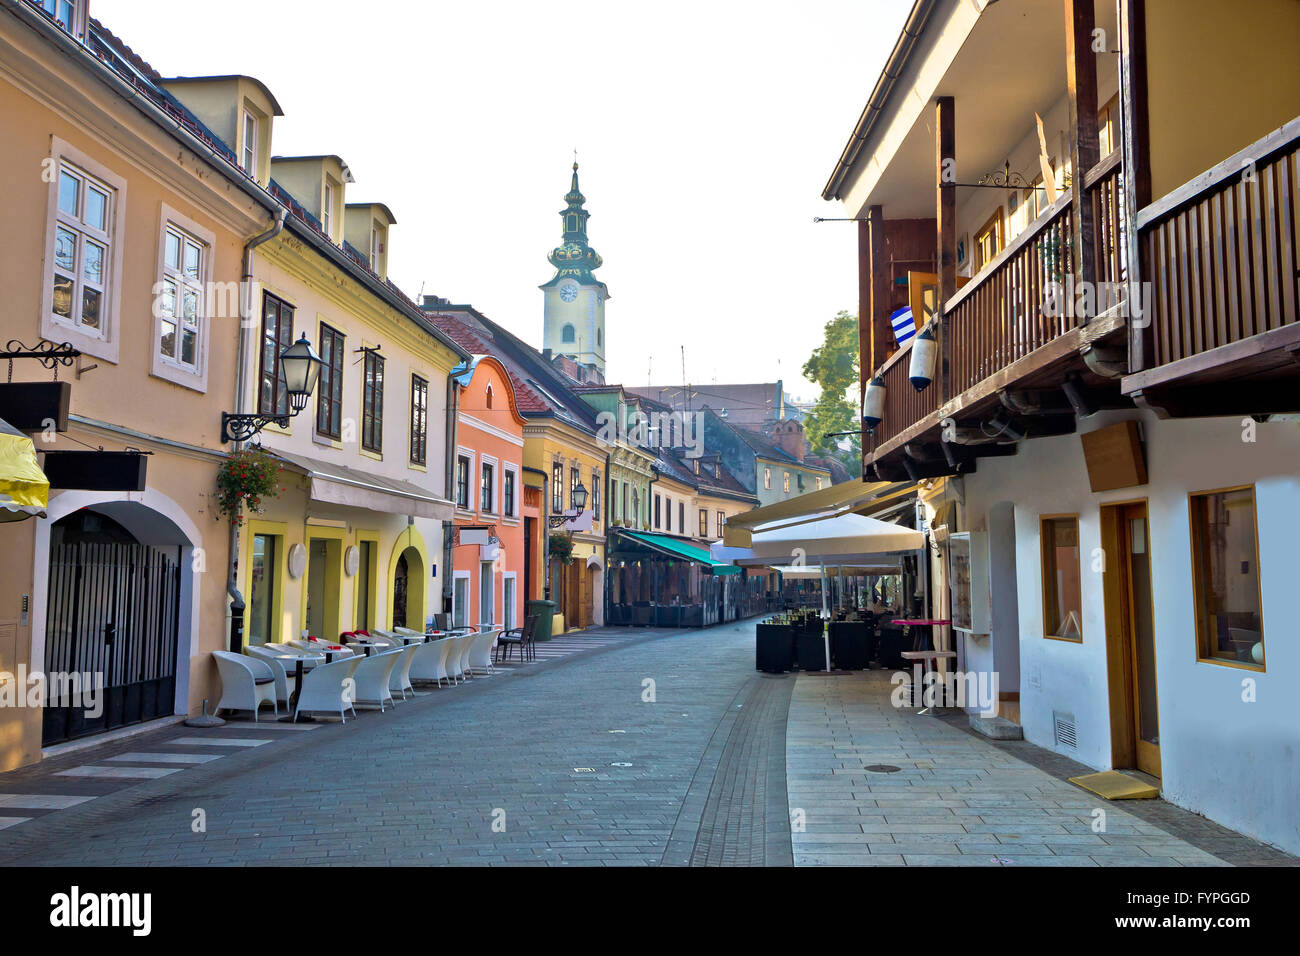 Old hitoric Zagreb street view - Stock Image